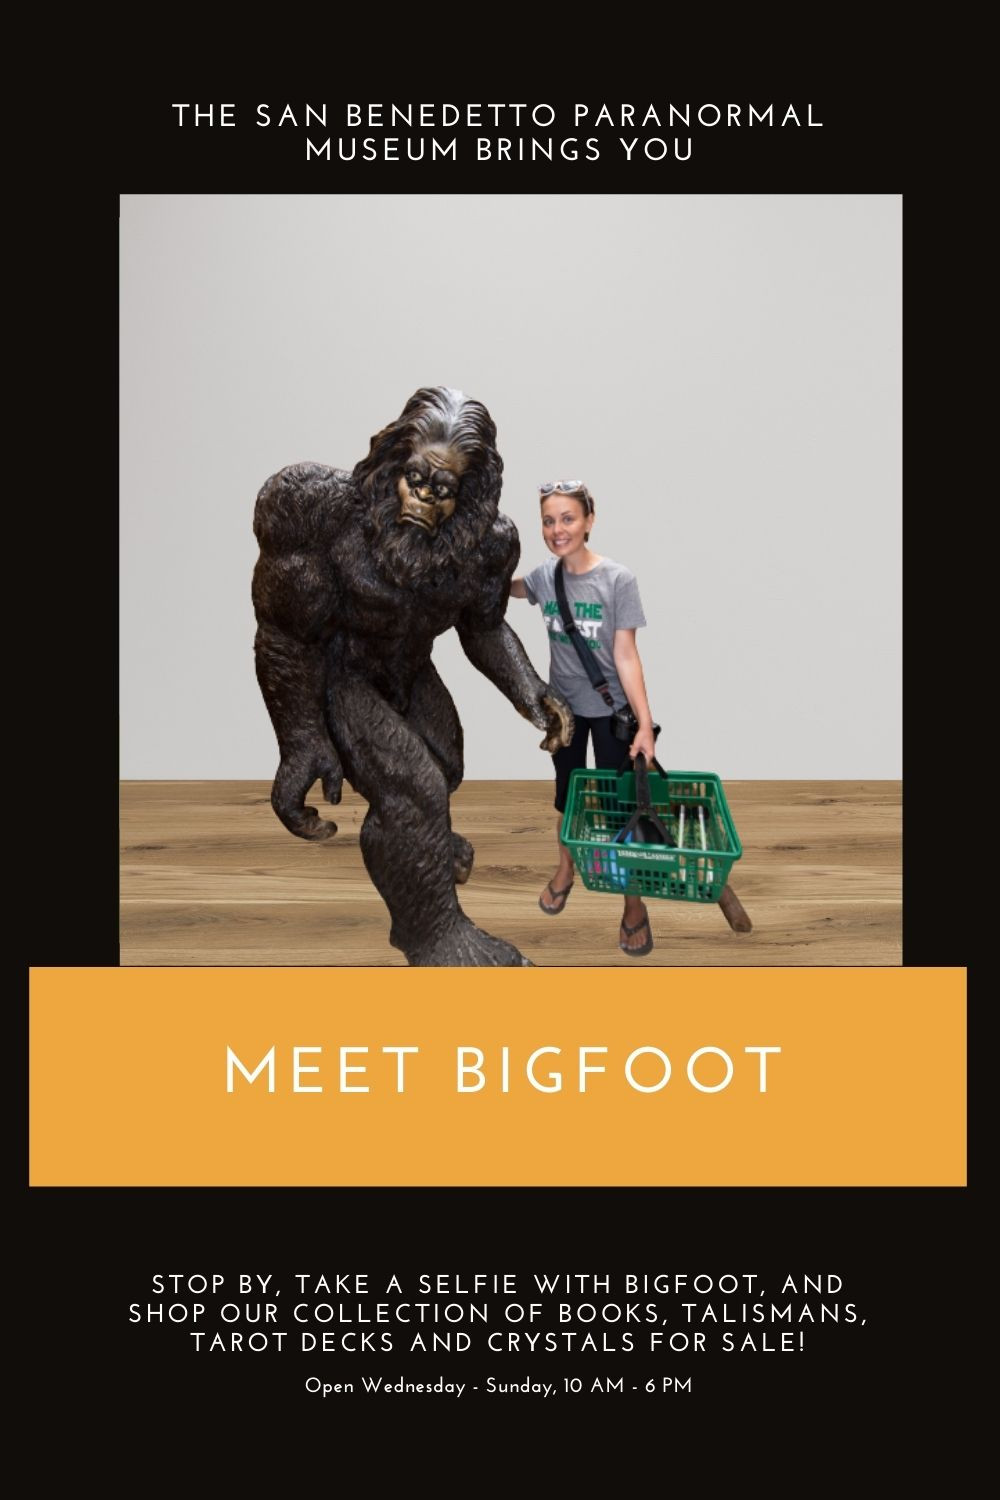 Take a photo with Bigfoot at the San Benedetto Paranormal Museum!